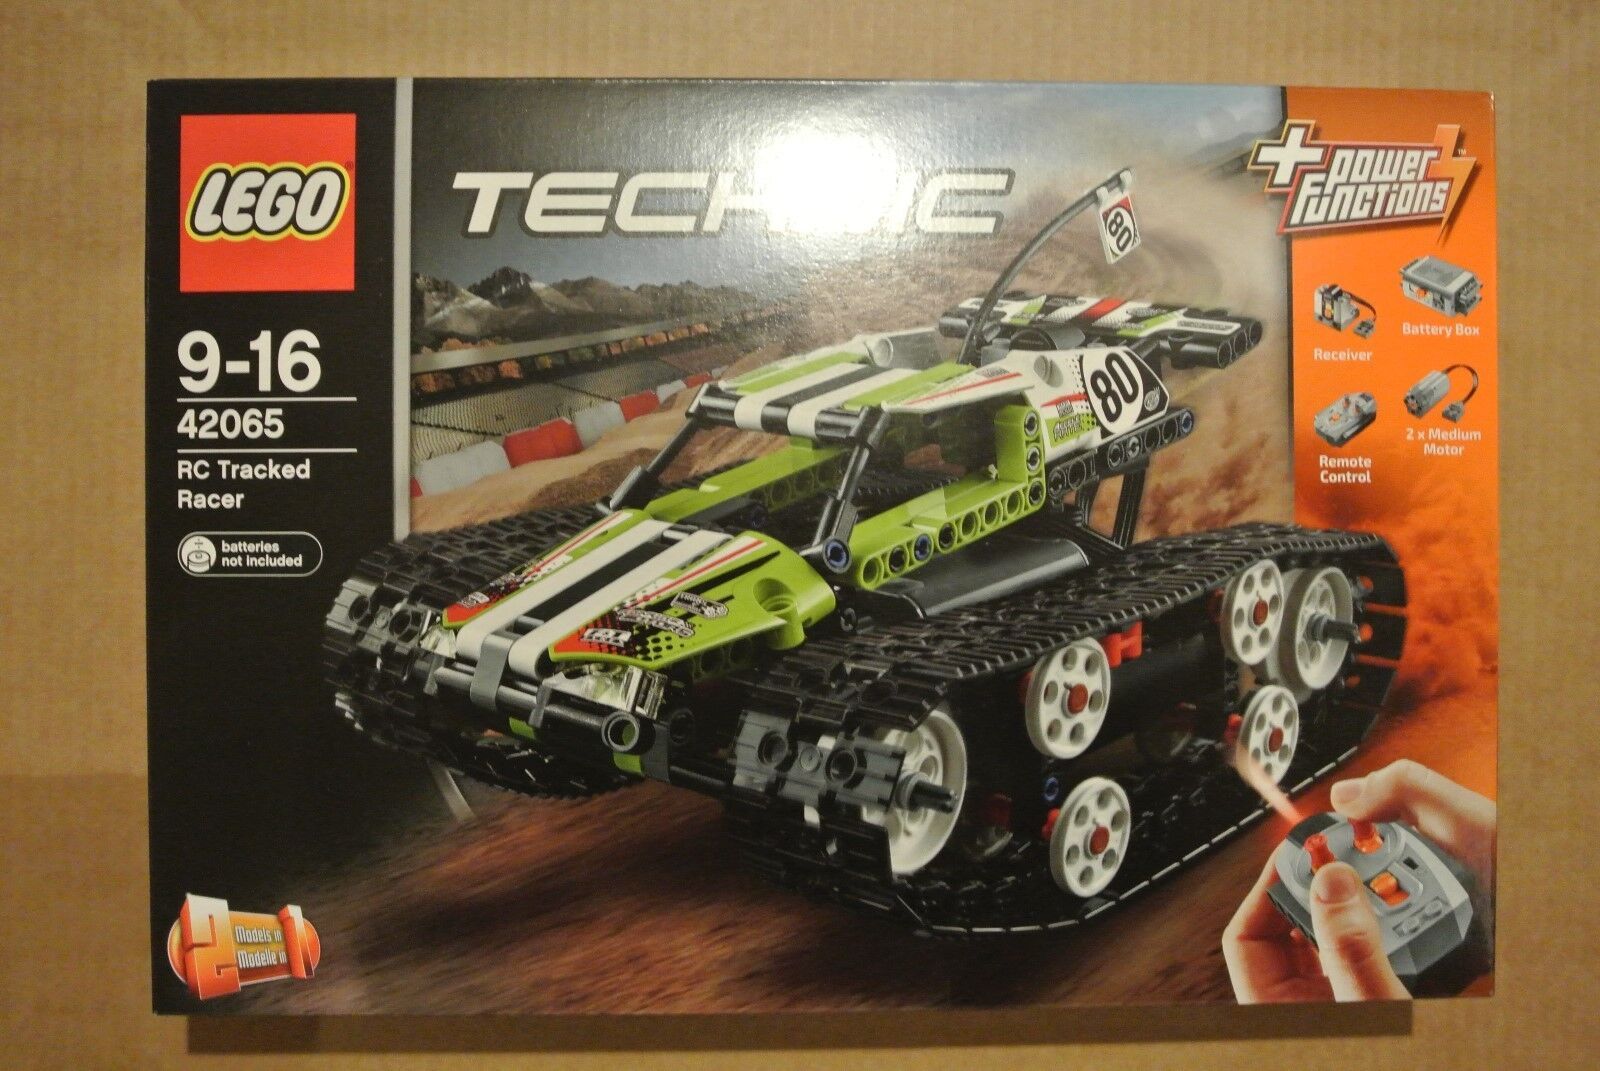 Lego Technic 42065 - RC Tracked Racer - POWER FUNCTIONS   - BRAND NEW